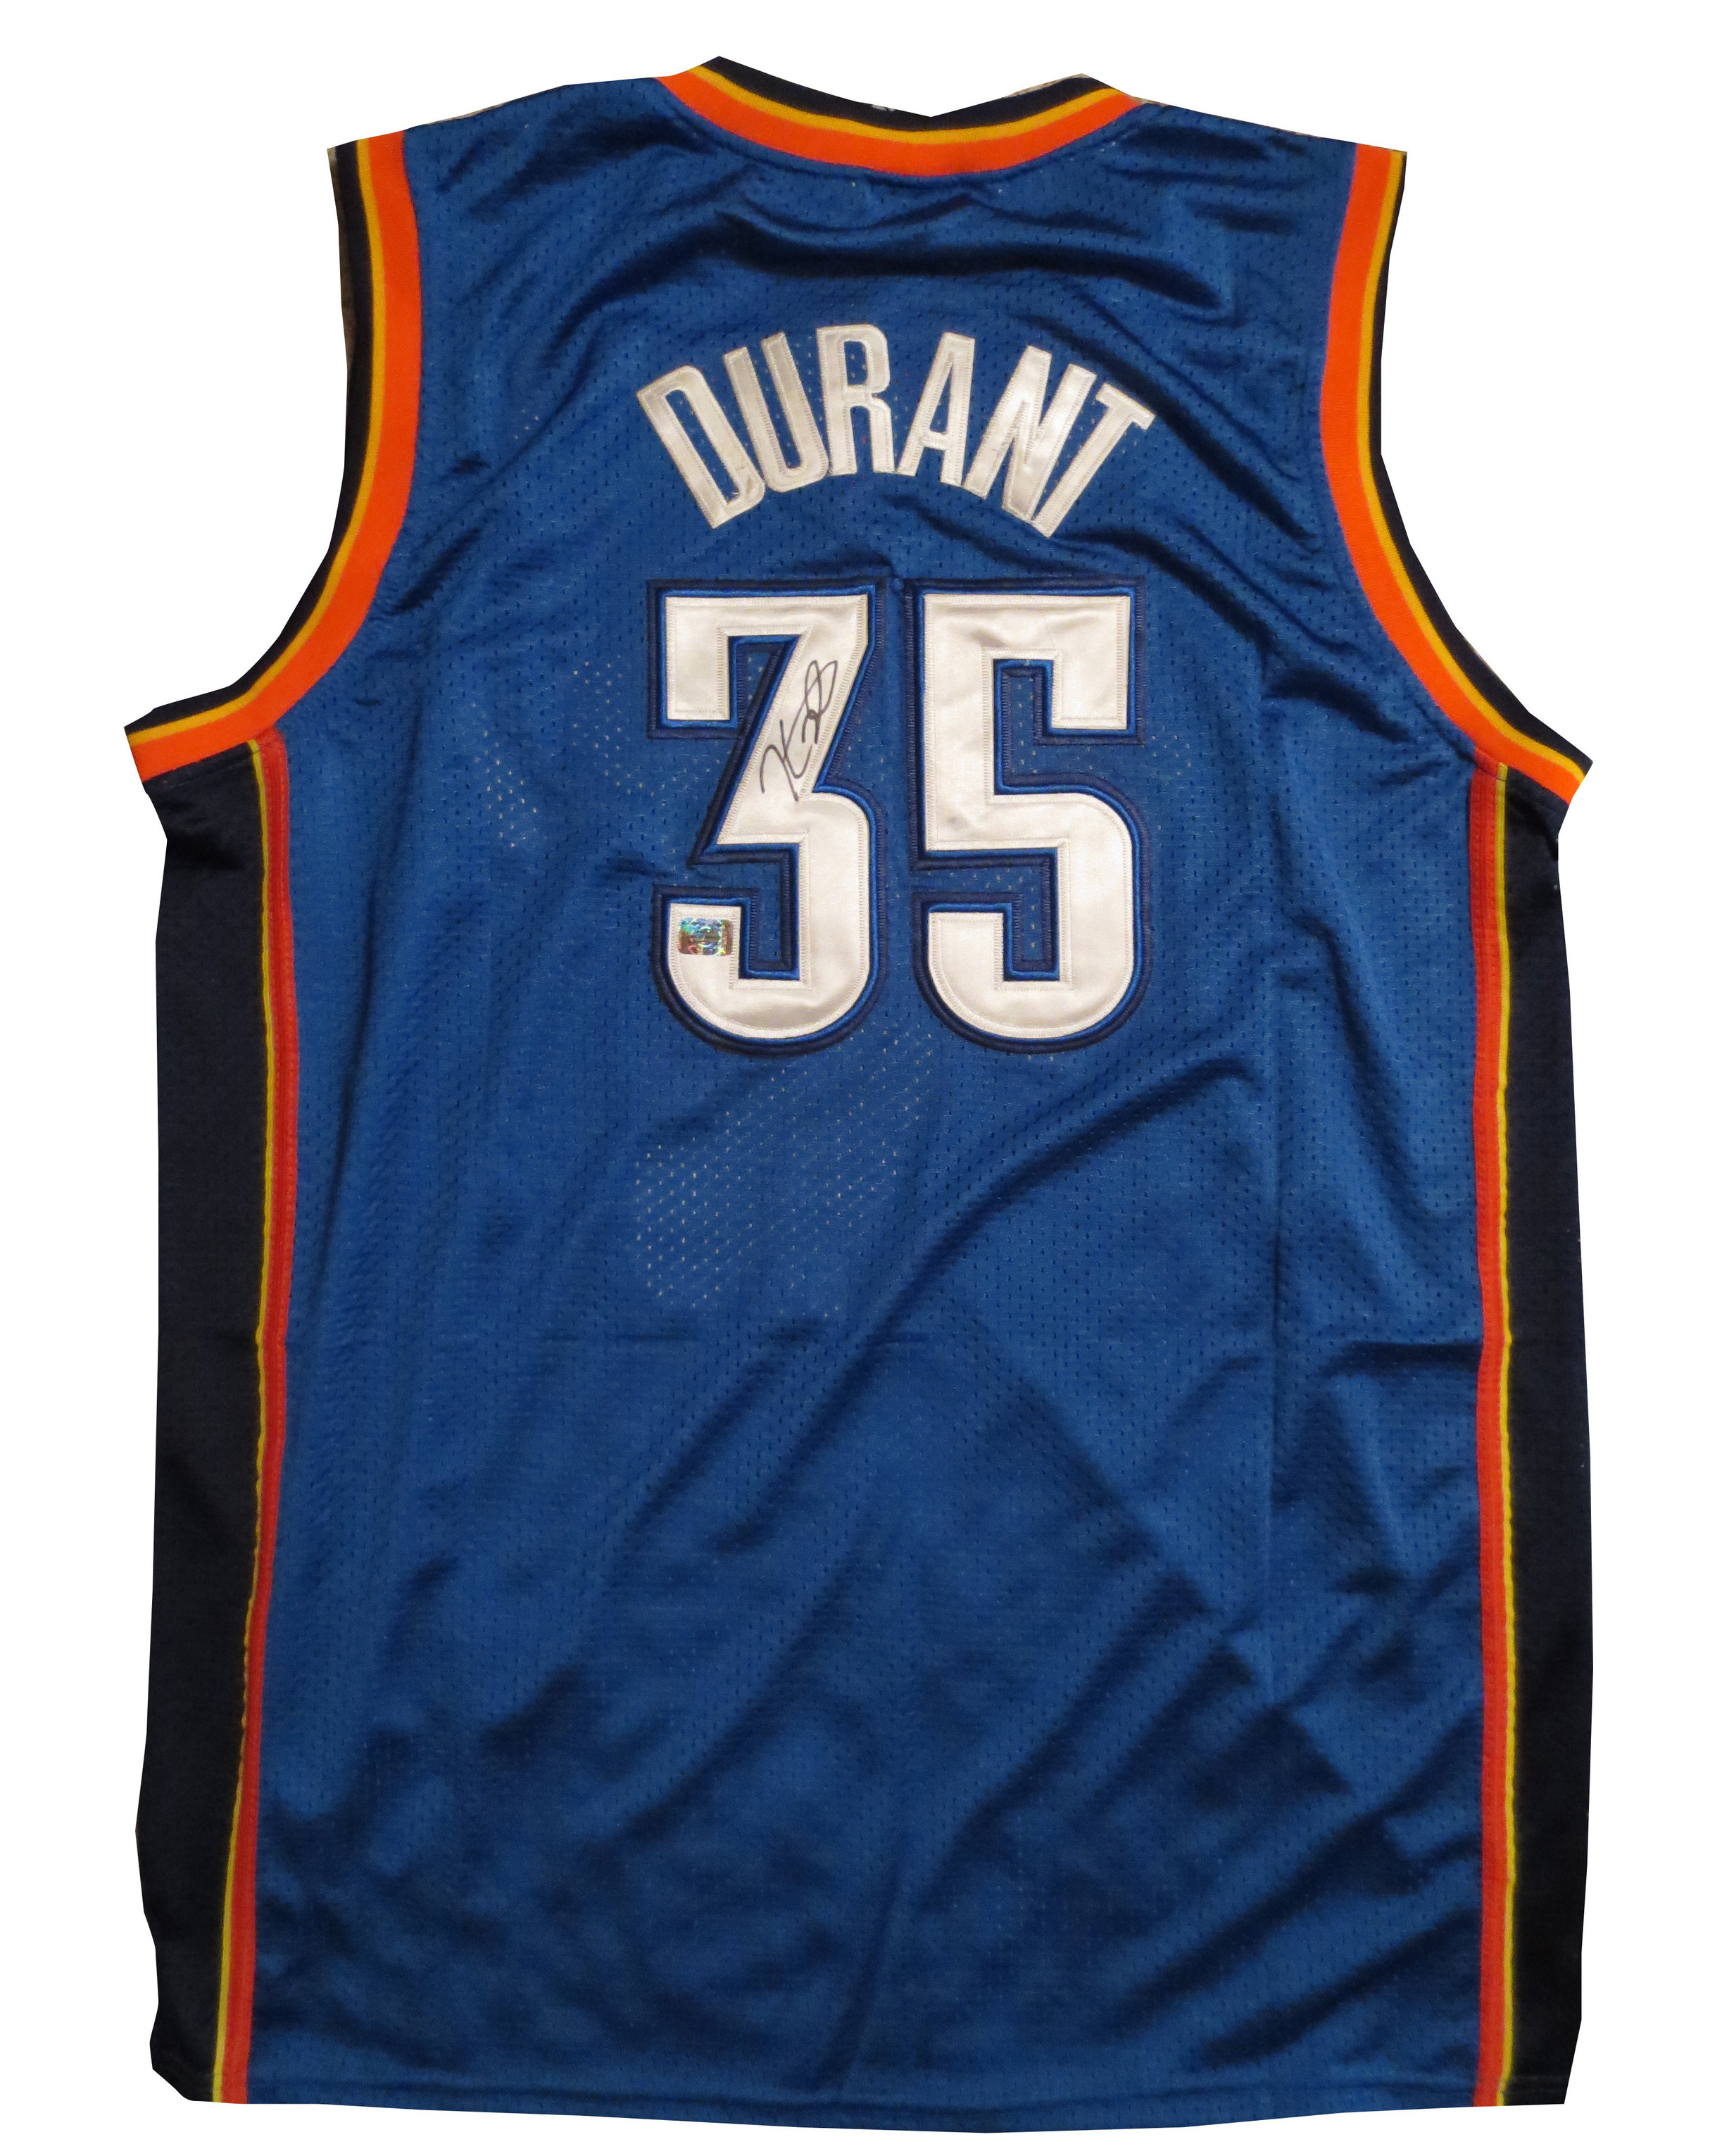 Kevin Durant Signed Jersey from Powers Autographs